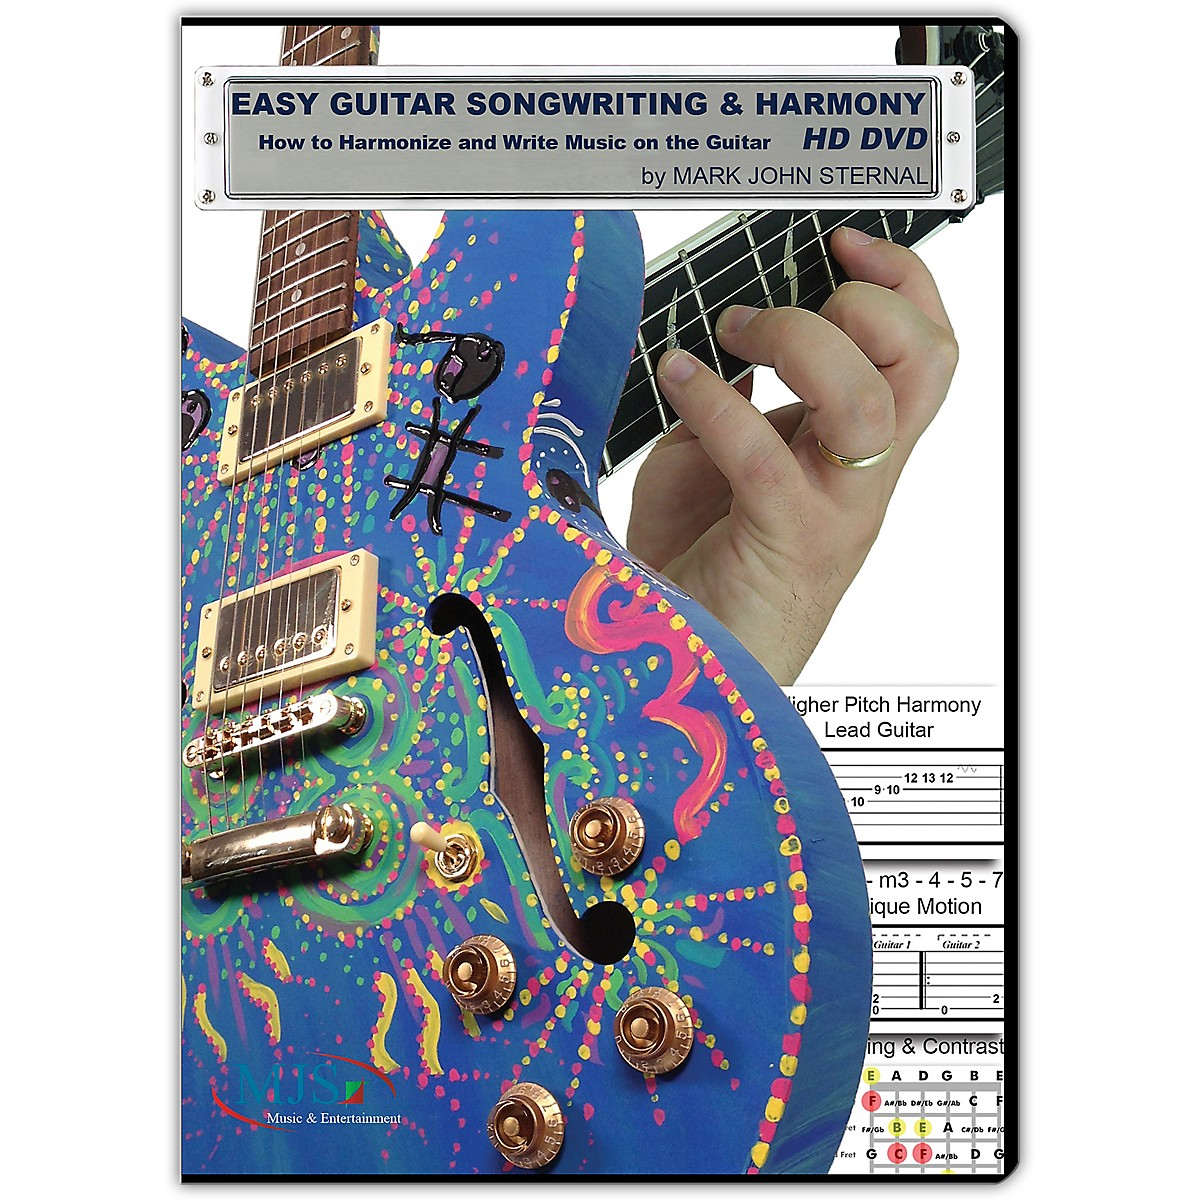 MJS Music Publications EASY GUITAR SONGWRITING DVD: Writing Music and Harmony on the Guitar